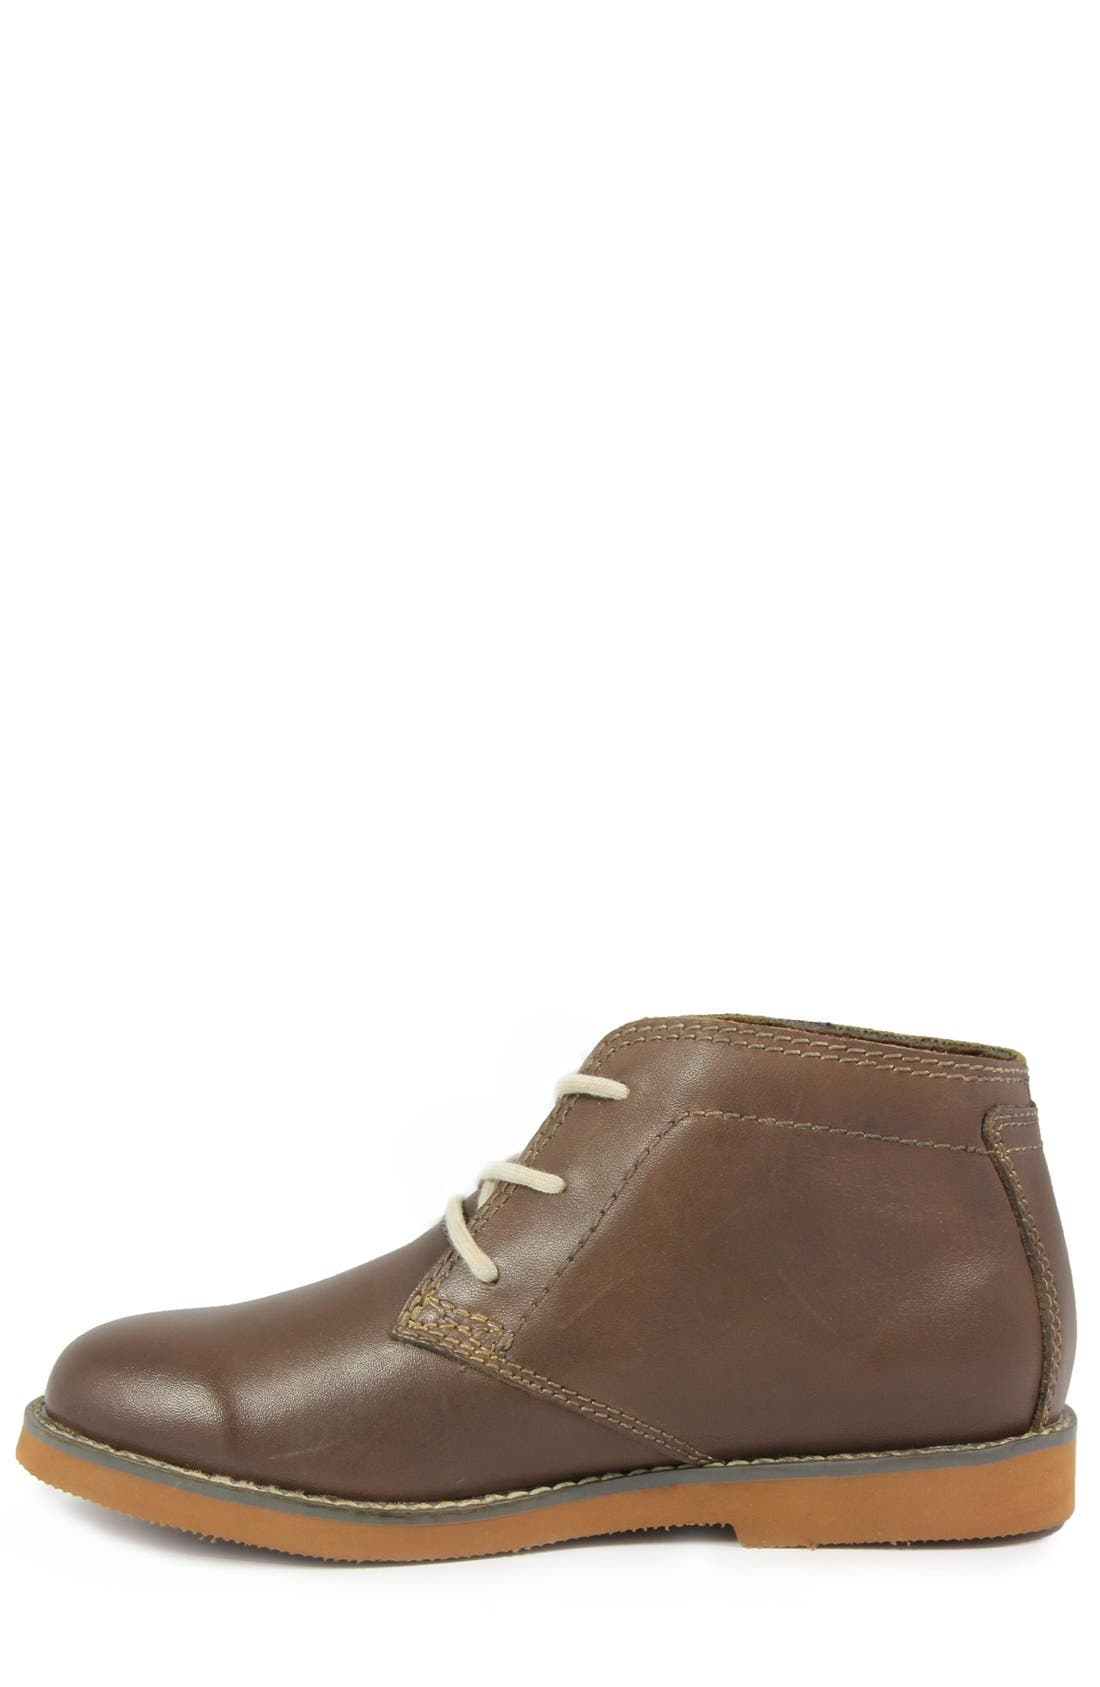 'Bucktown' Chukka Boot,                             Alternate thumbnail 8, color,